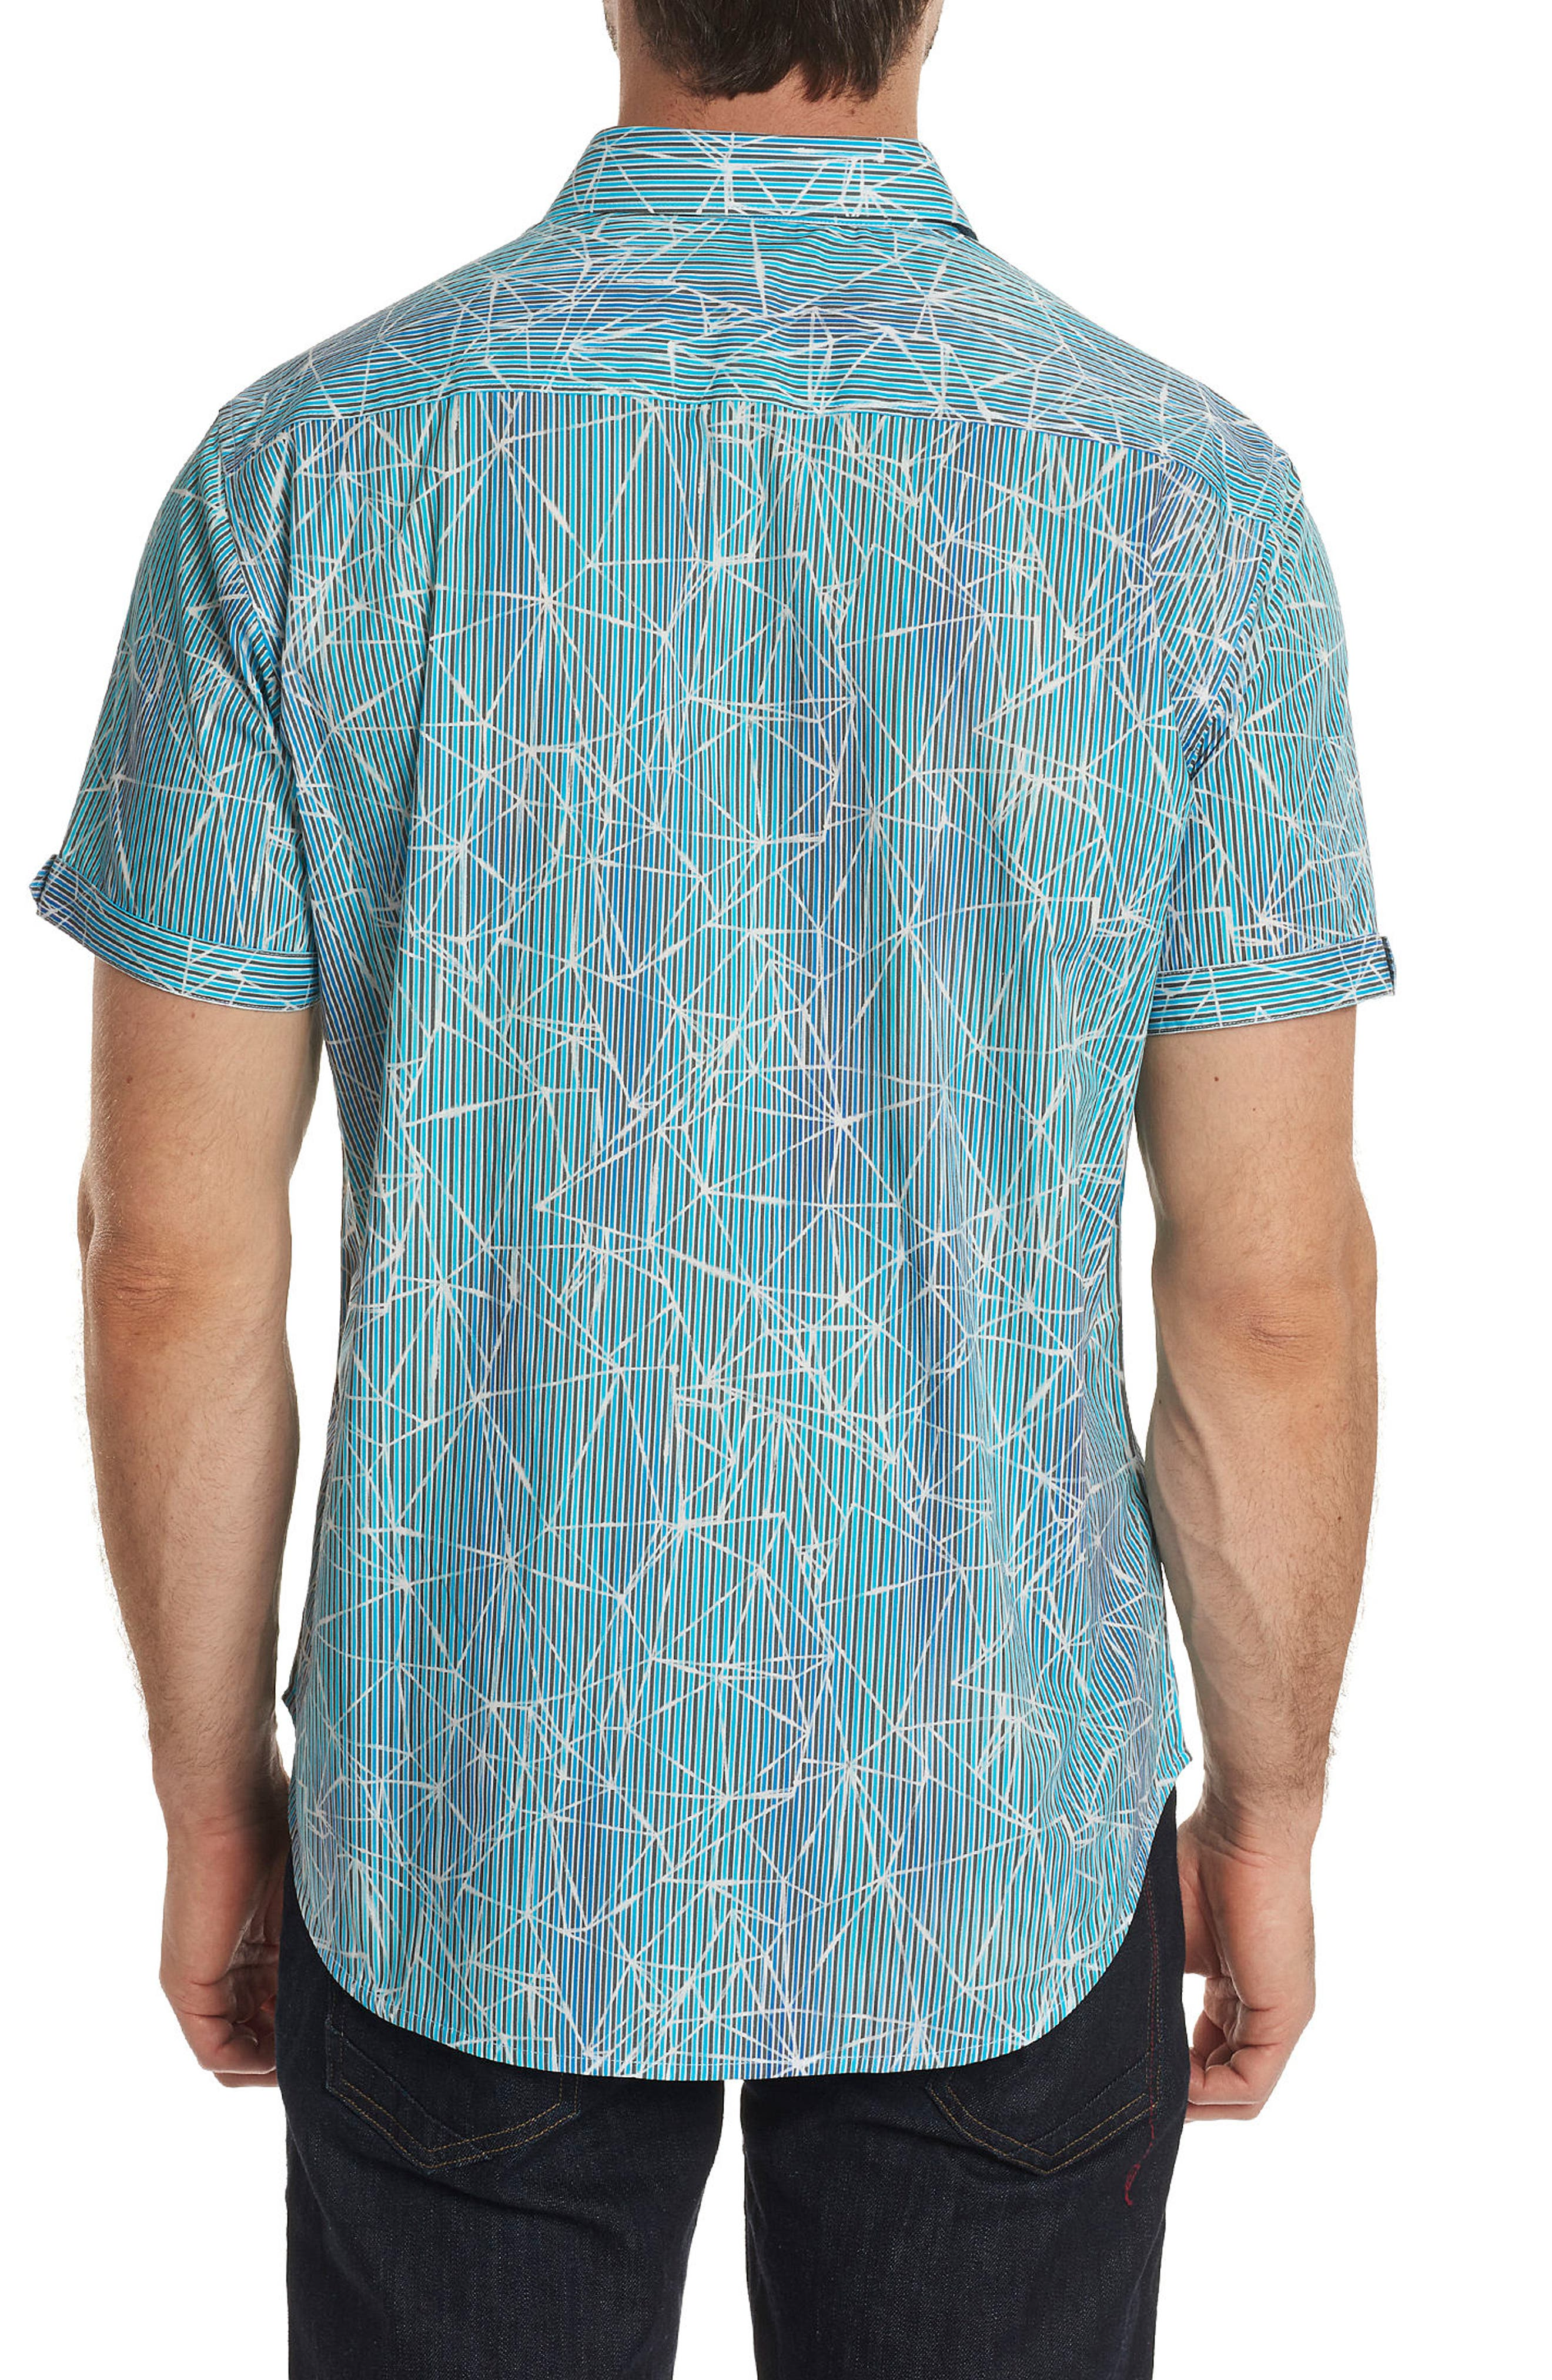 Illusions Print Sport Shirt,                             Alternate thumbnail 2, color,                             Turquoise